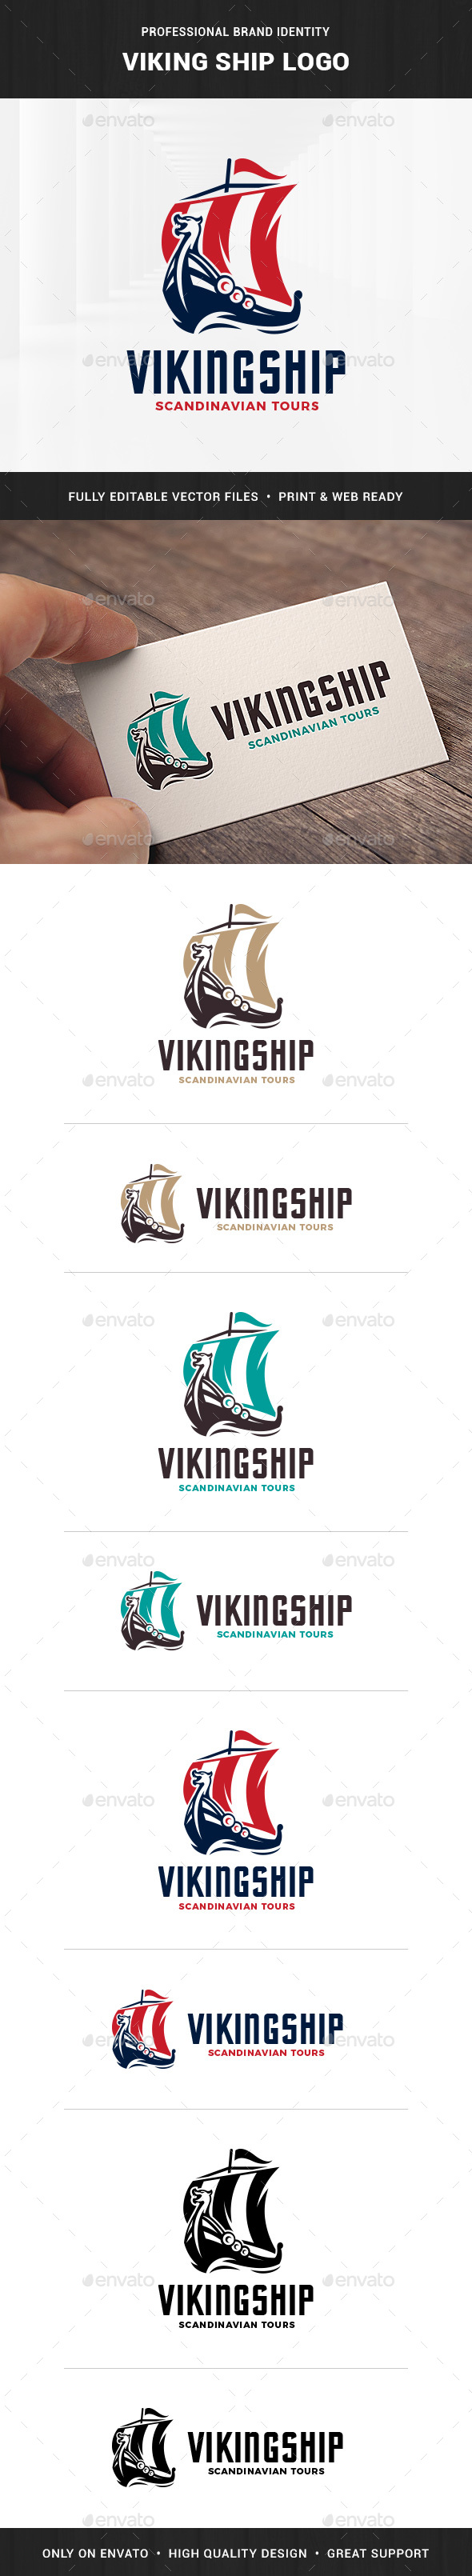 Viking Ship Logo Template - Objects Logo Templates